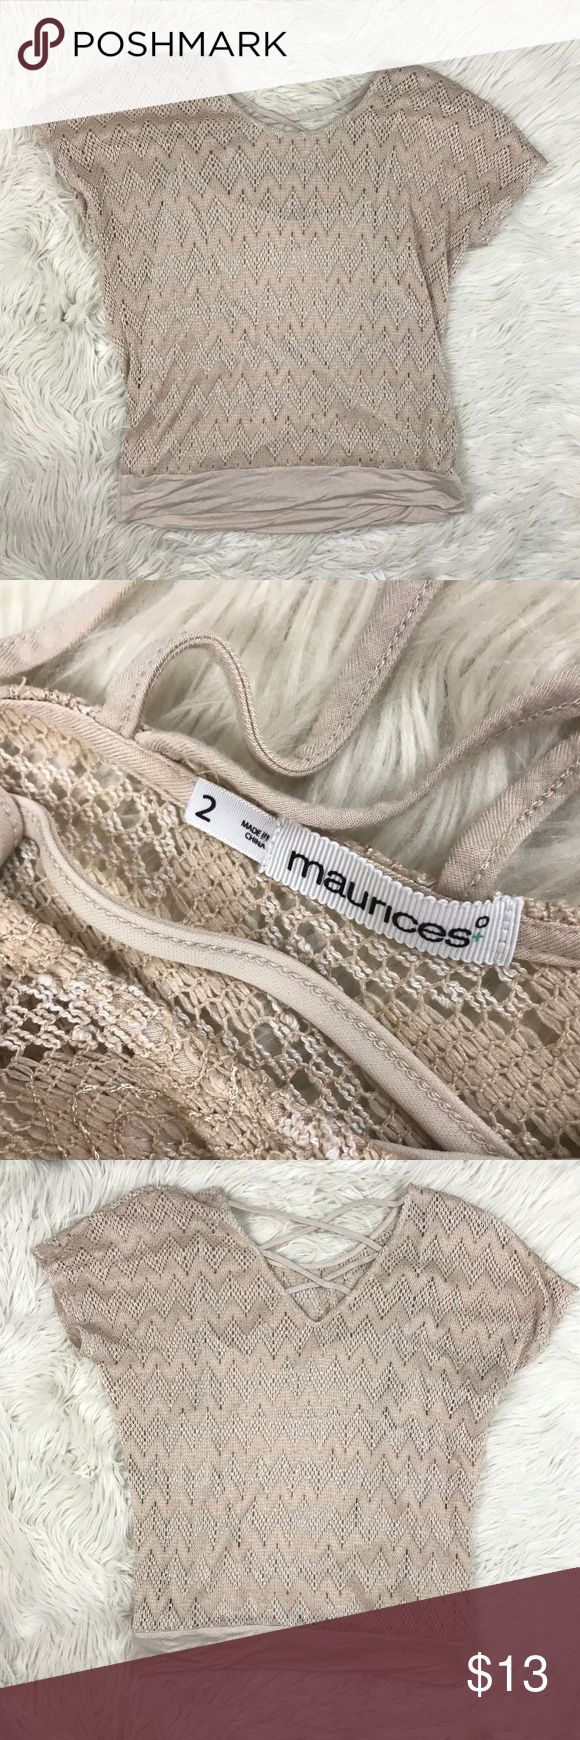 Maurices Sz 2 (20-22) Tan Crochet Strappy Back Top Maurices Women's Plus Size 2 (20-22) Tan Lace Crochet Top Shirt Strappy Back   Materials: 72% Polyester, 28% Rayon   Measurements (approximate) in inches. Items are measured laying flat & not stretched.  Length: 26 Underarm to underarm: 21 Maurices Tops Blouses